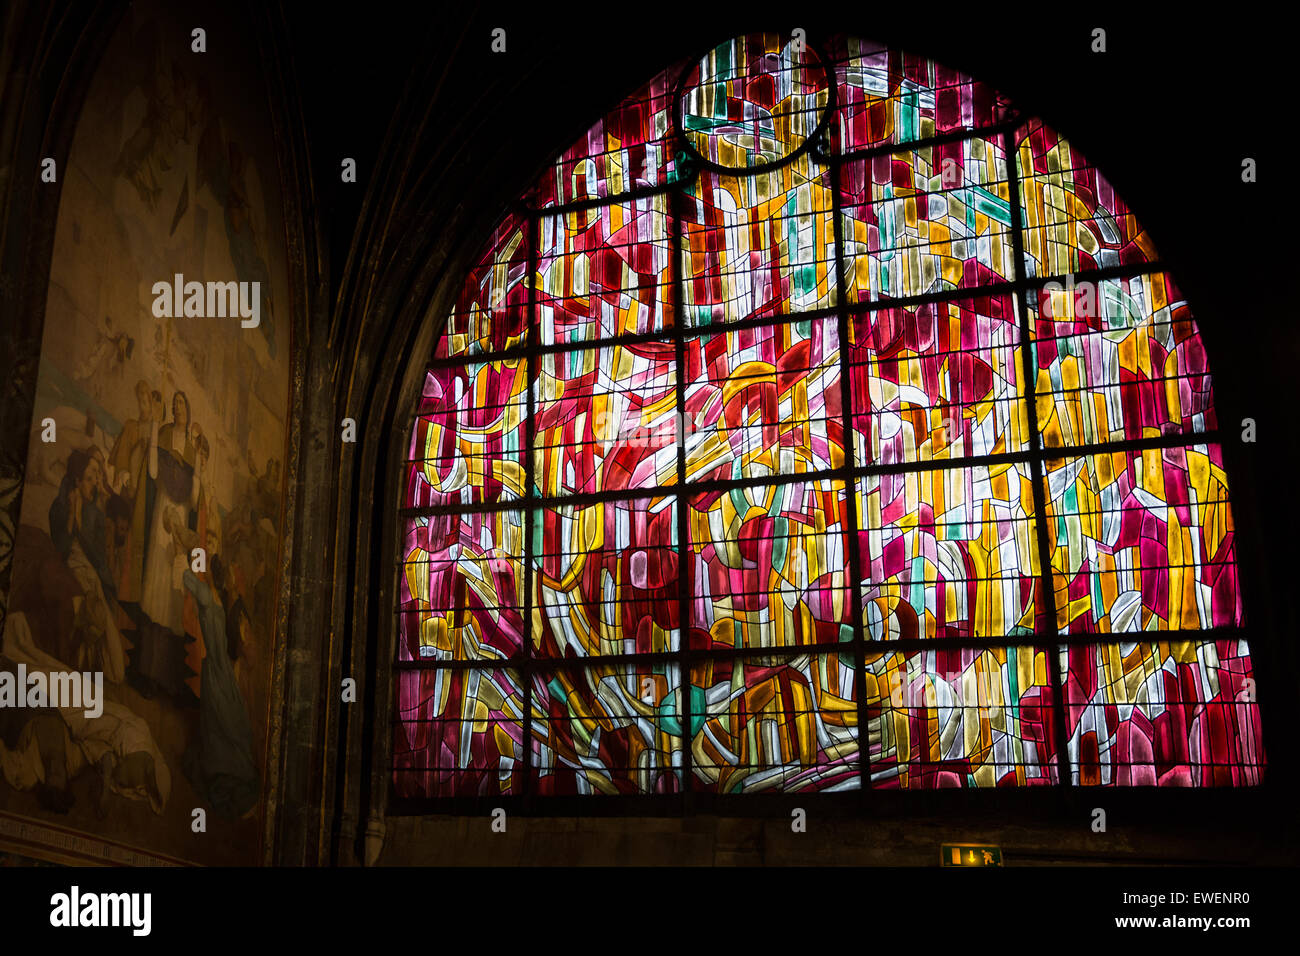 One of a series of stain glass windows in Saint-Severin designed  by Jean Rene Bazaine. Stock Photo